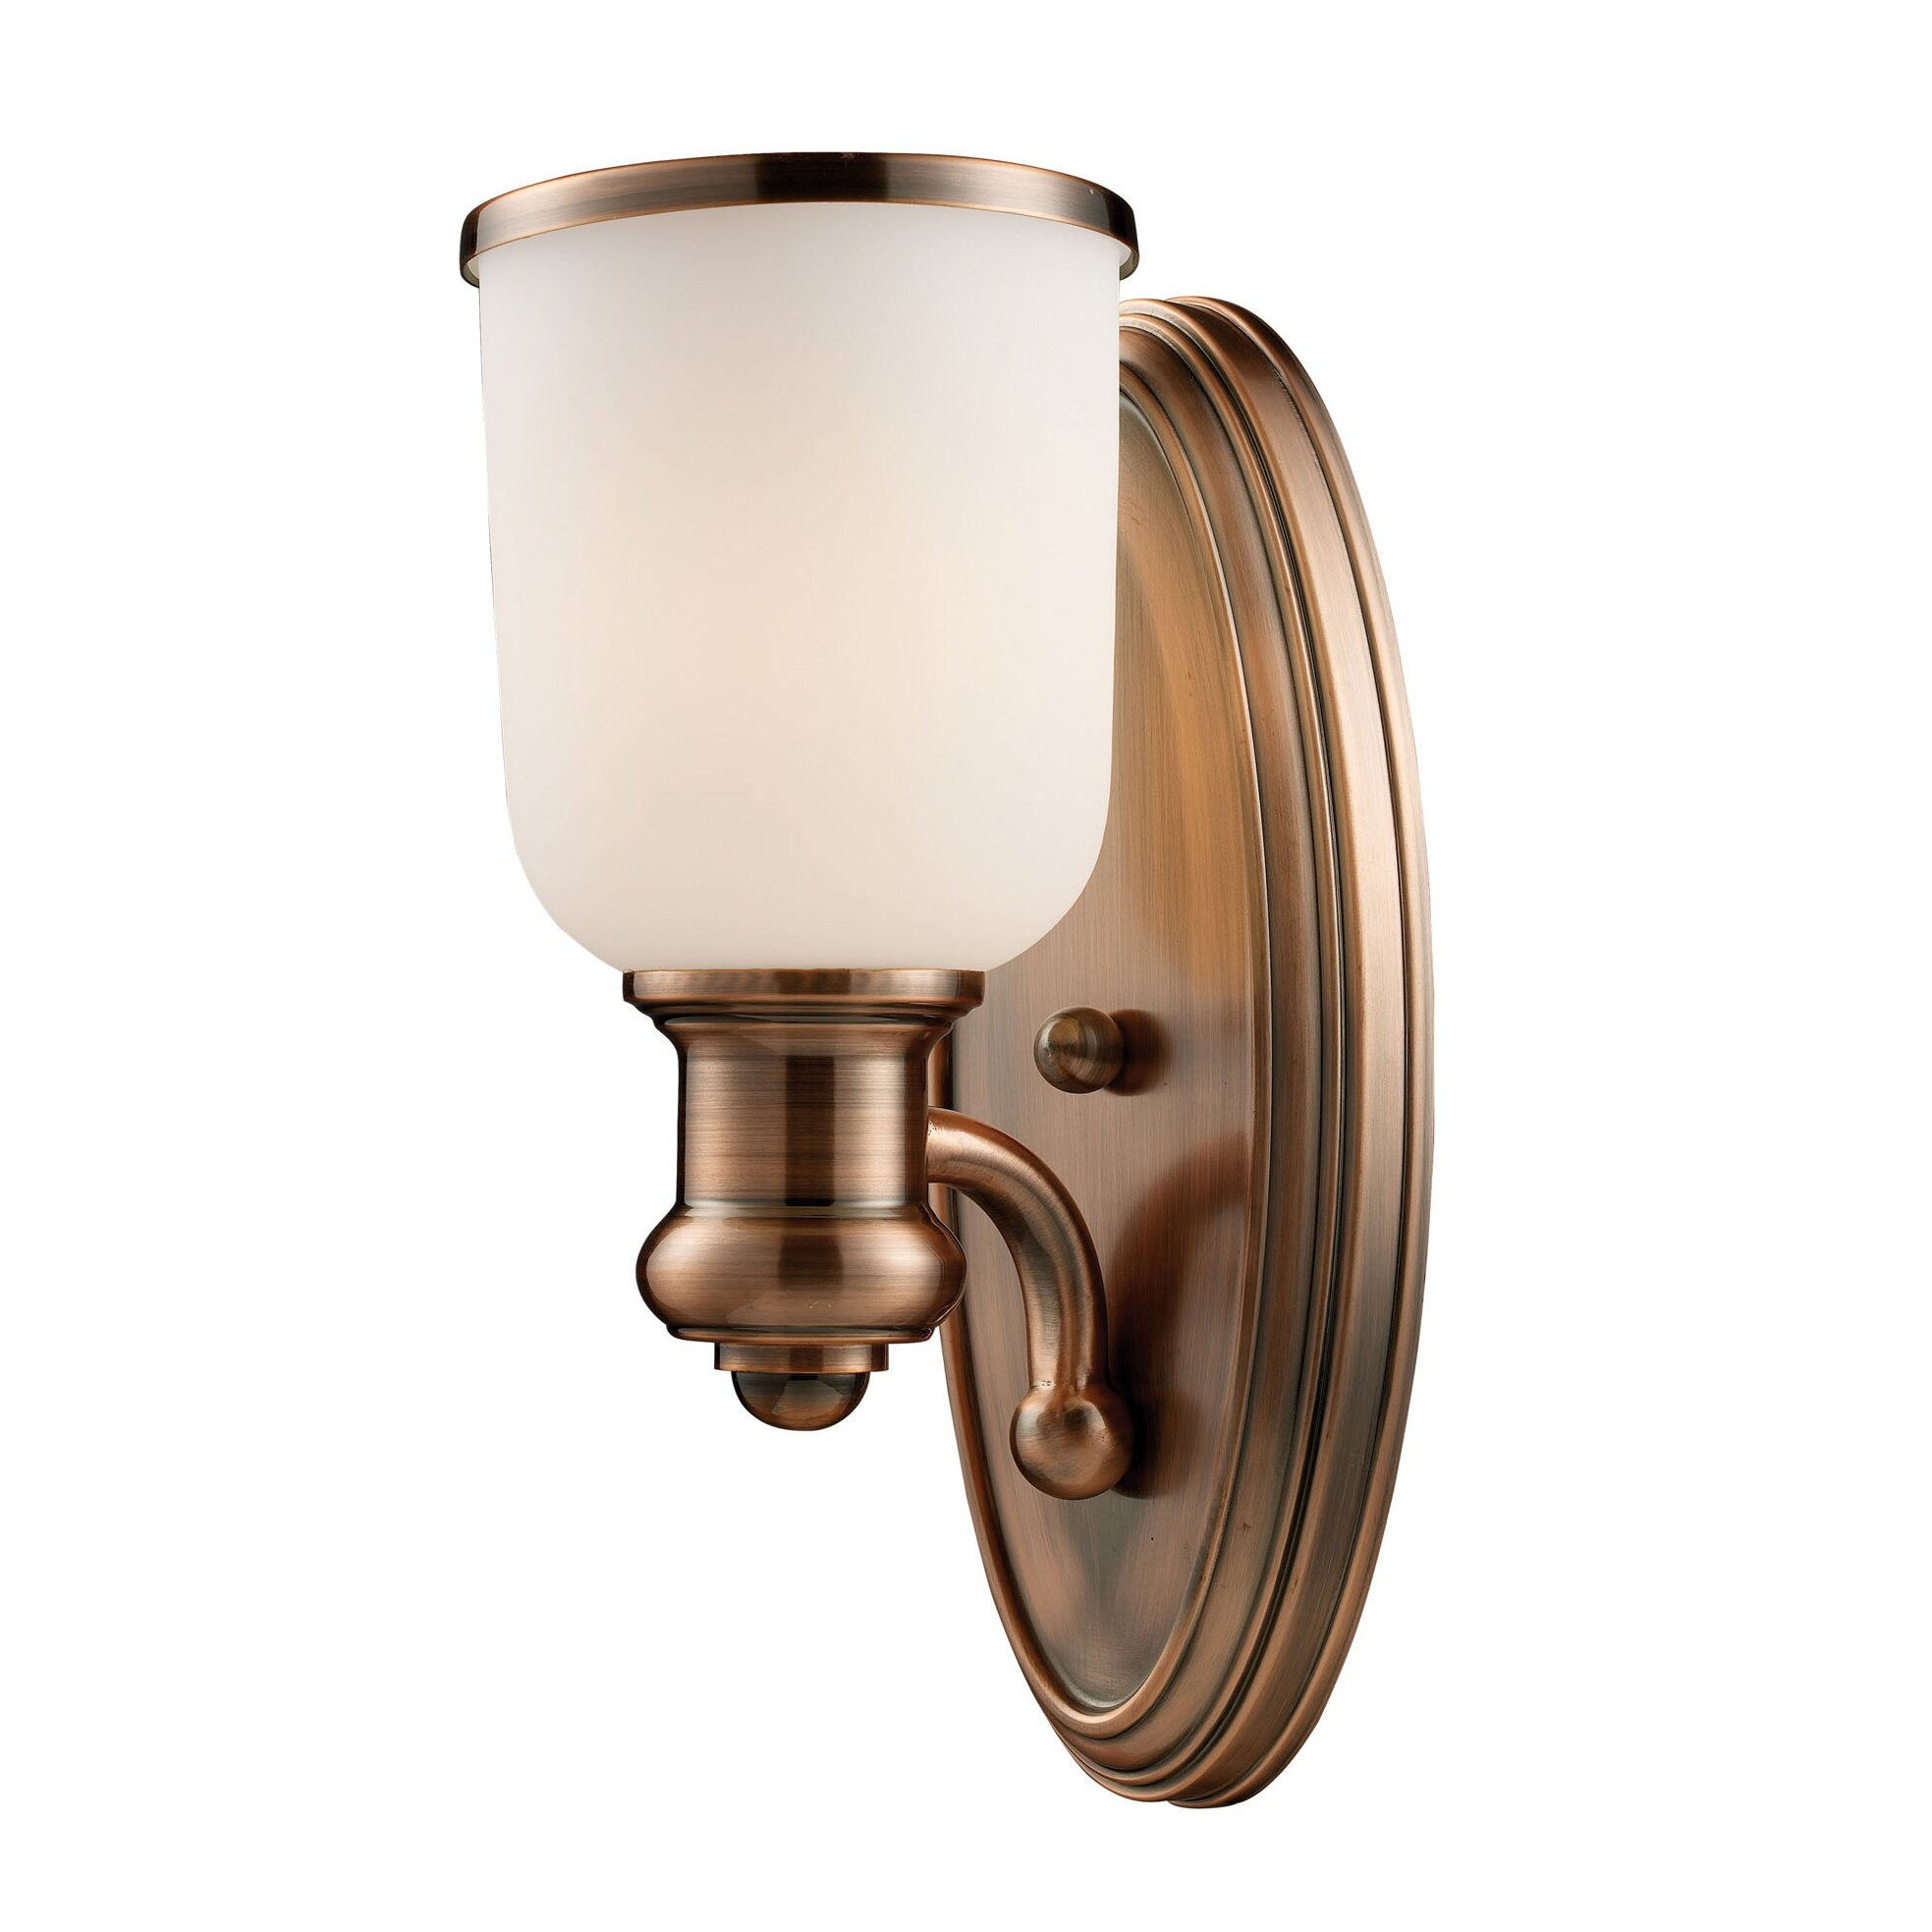 Wall Sconce With Magnifying Glass : Darby Home Co Claflin 1 Light Wall Sconce Wayfair